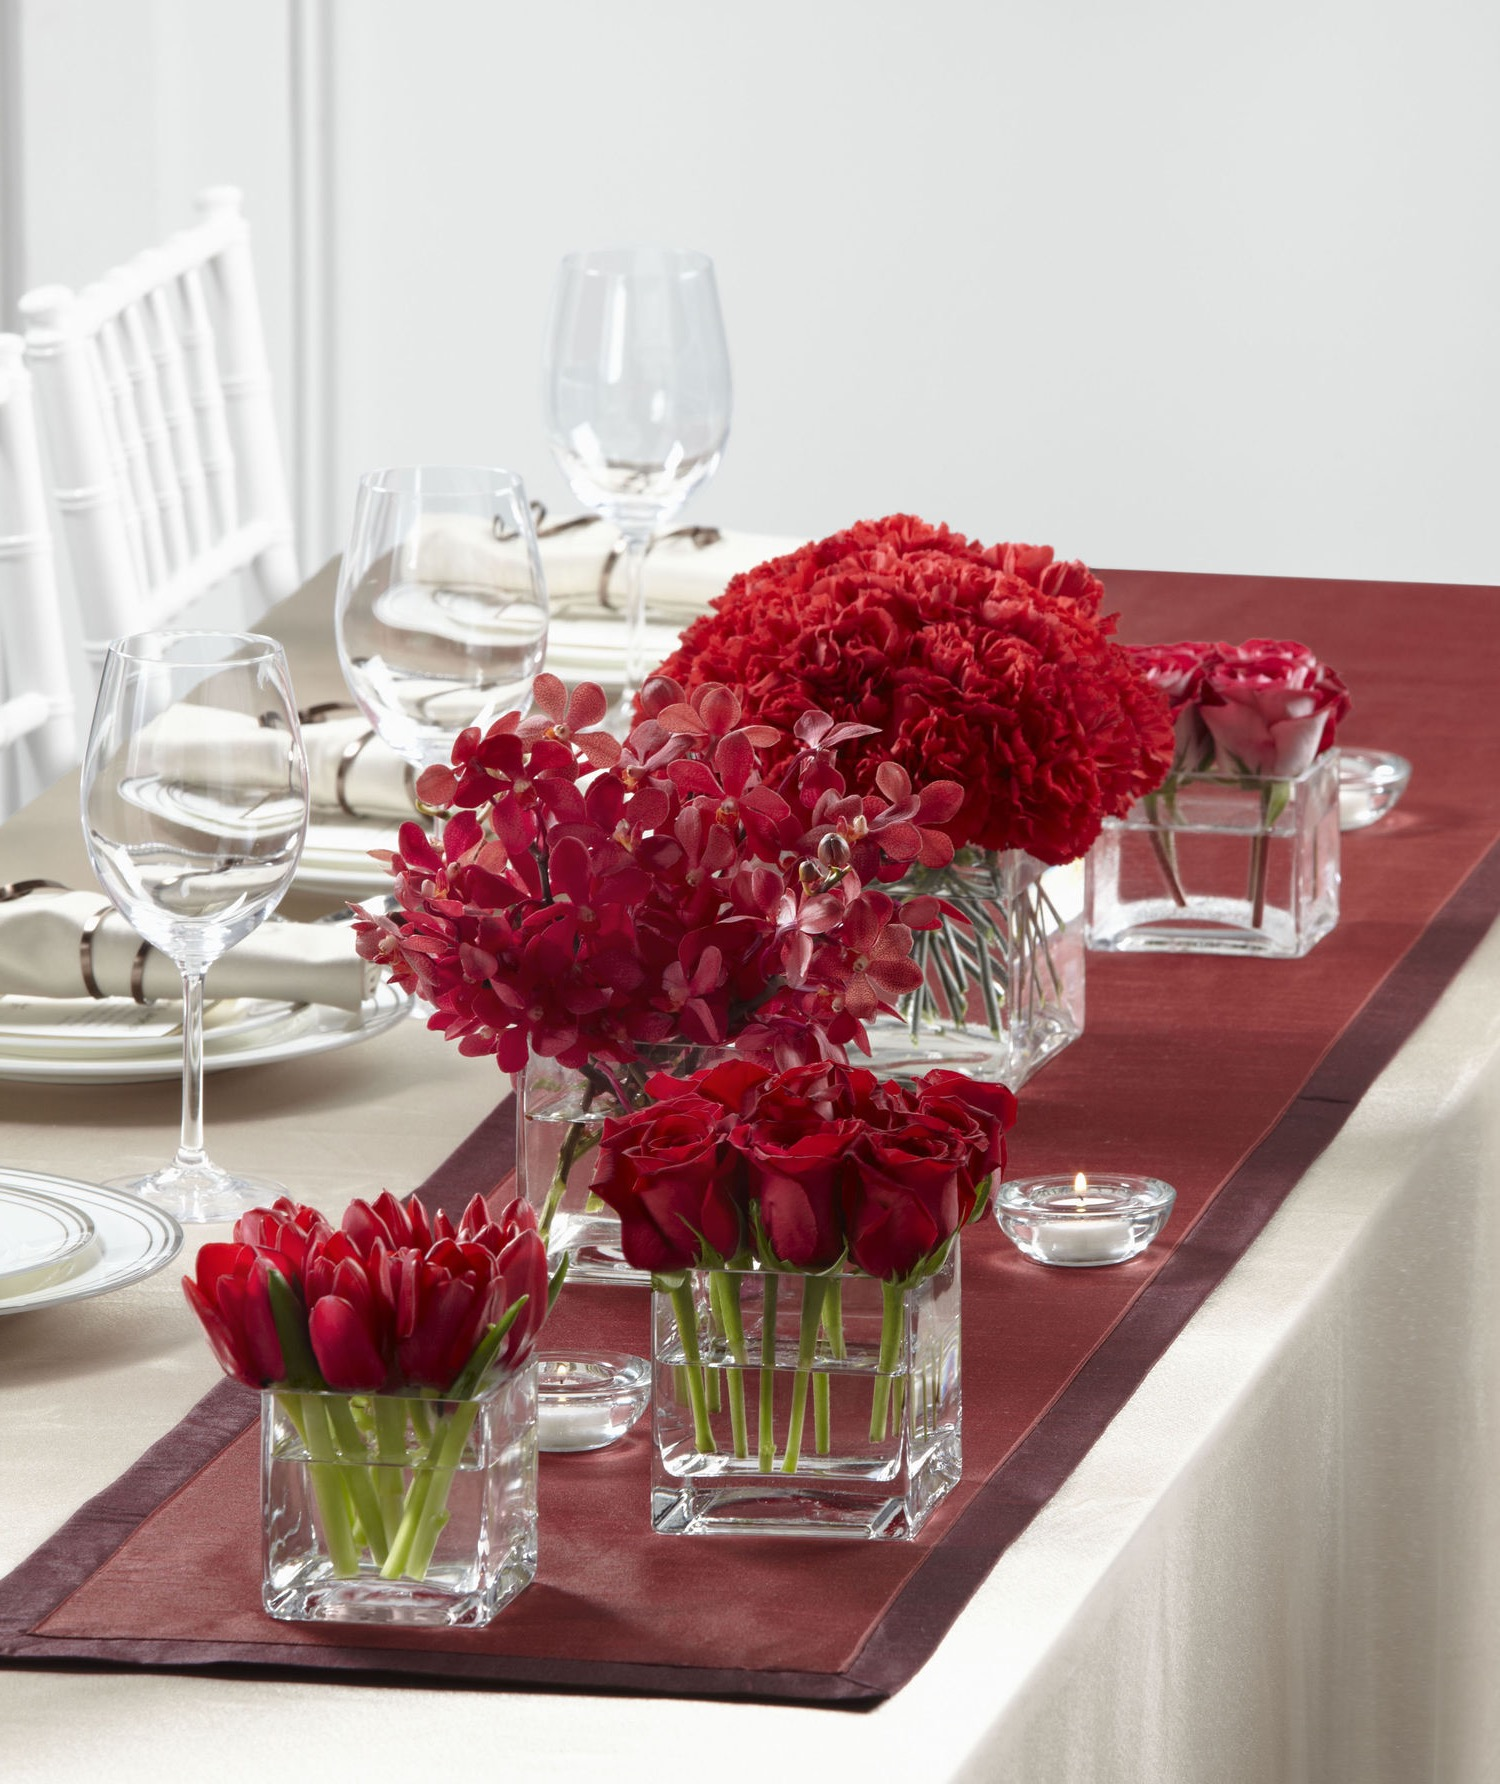 Wedding Table Decoration With Red Flowers Centerpieces (Image 15 of 15)